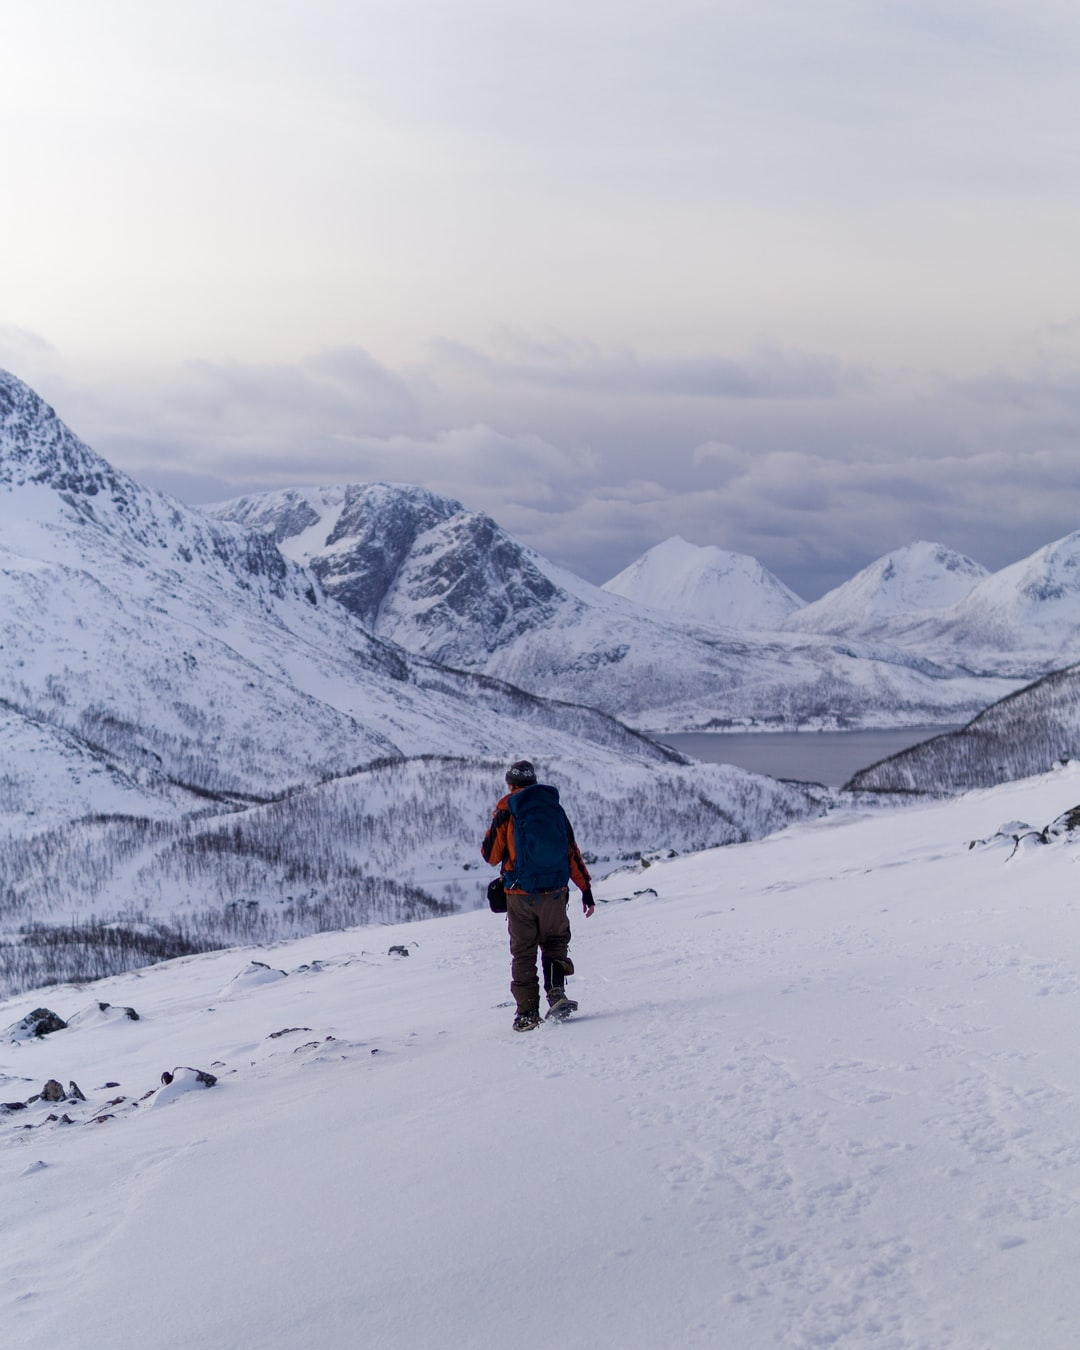 a man hiking with snowshoes in an arctic landscape